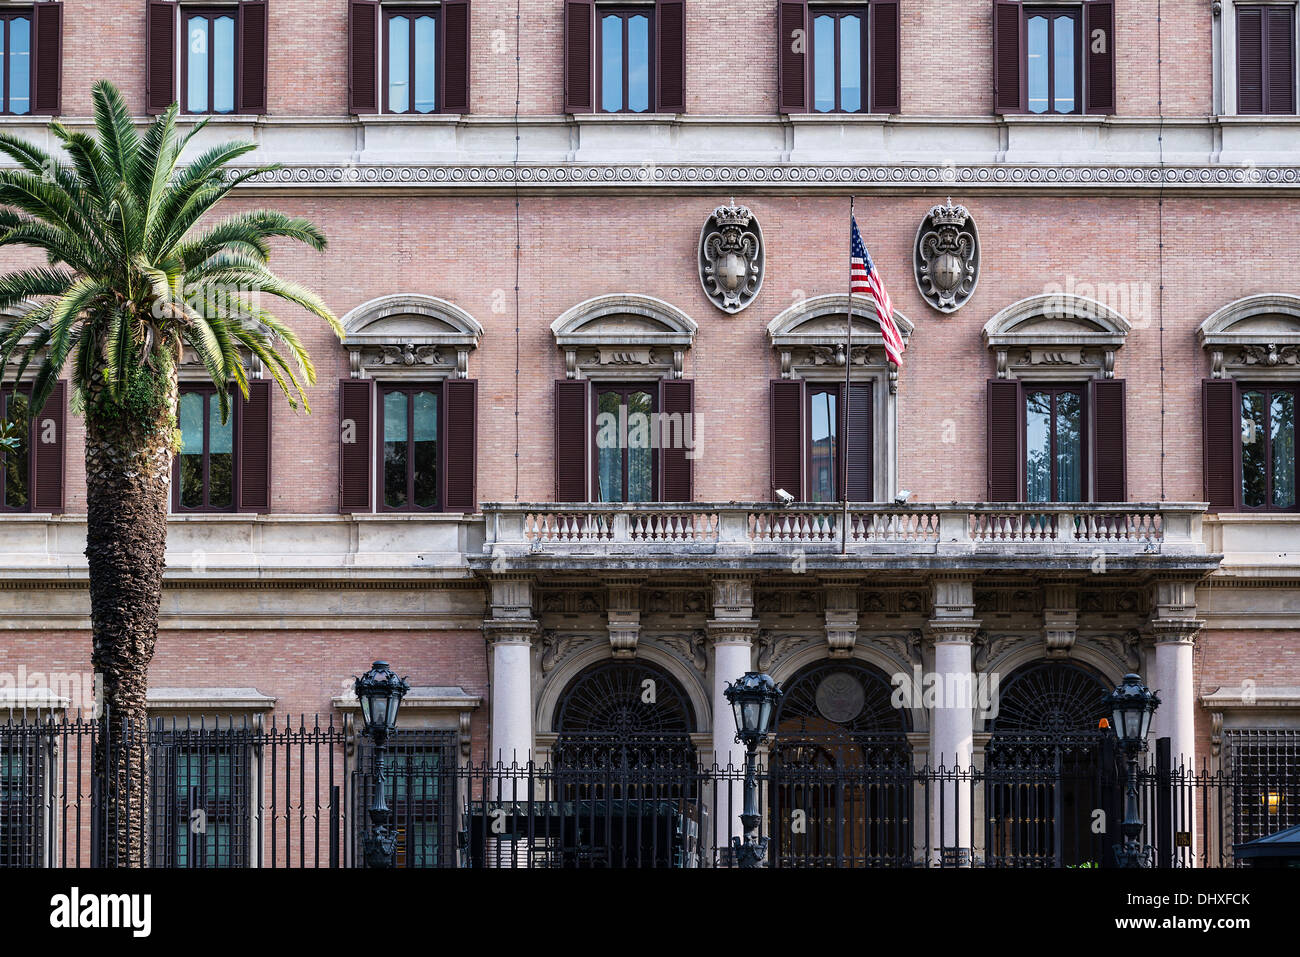 United States Embassy in Rome, Italy - Stock Image